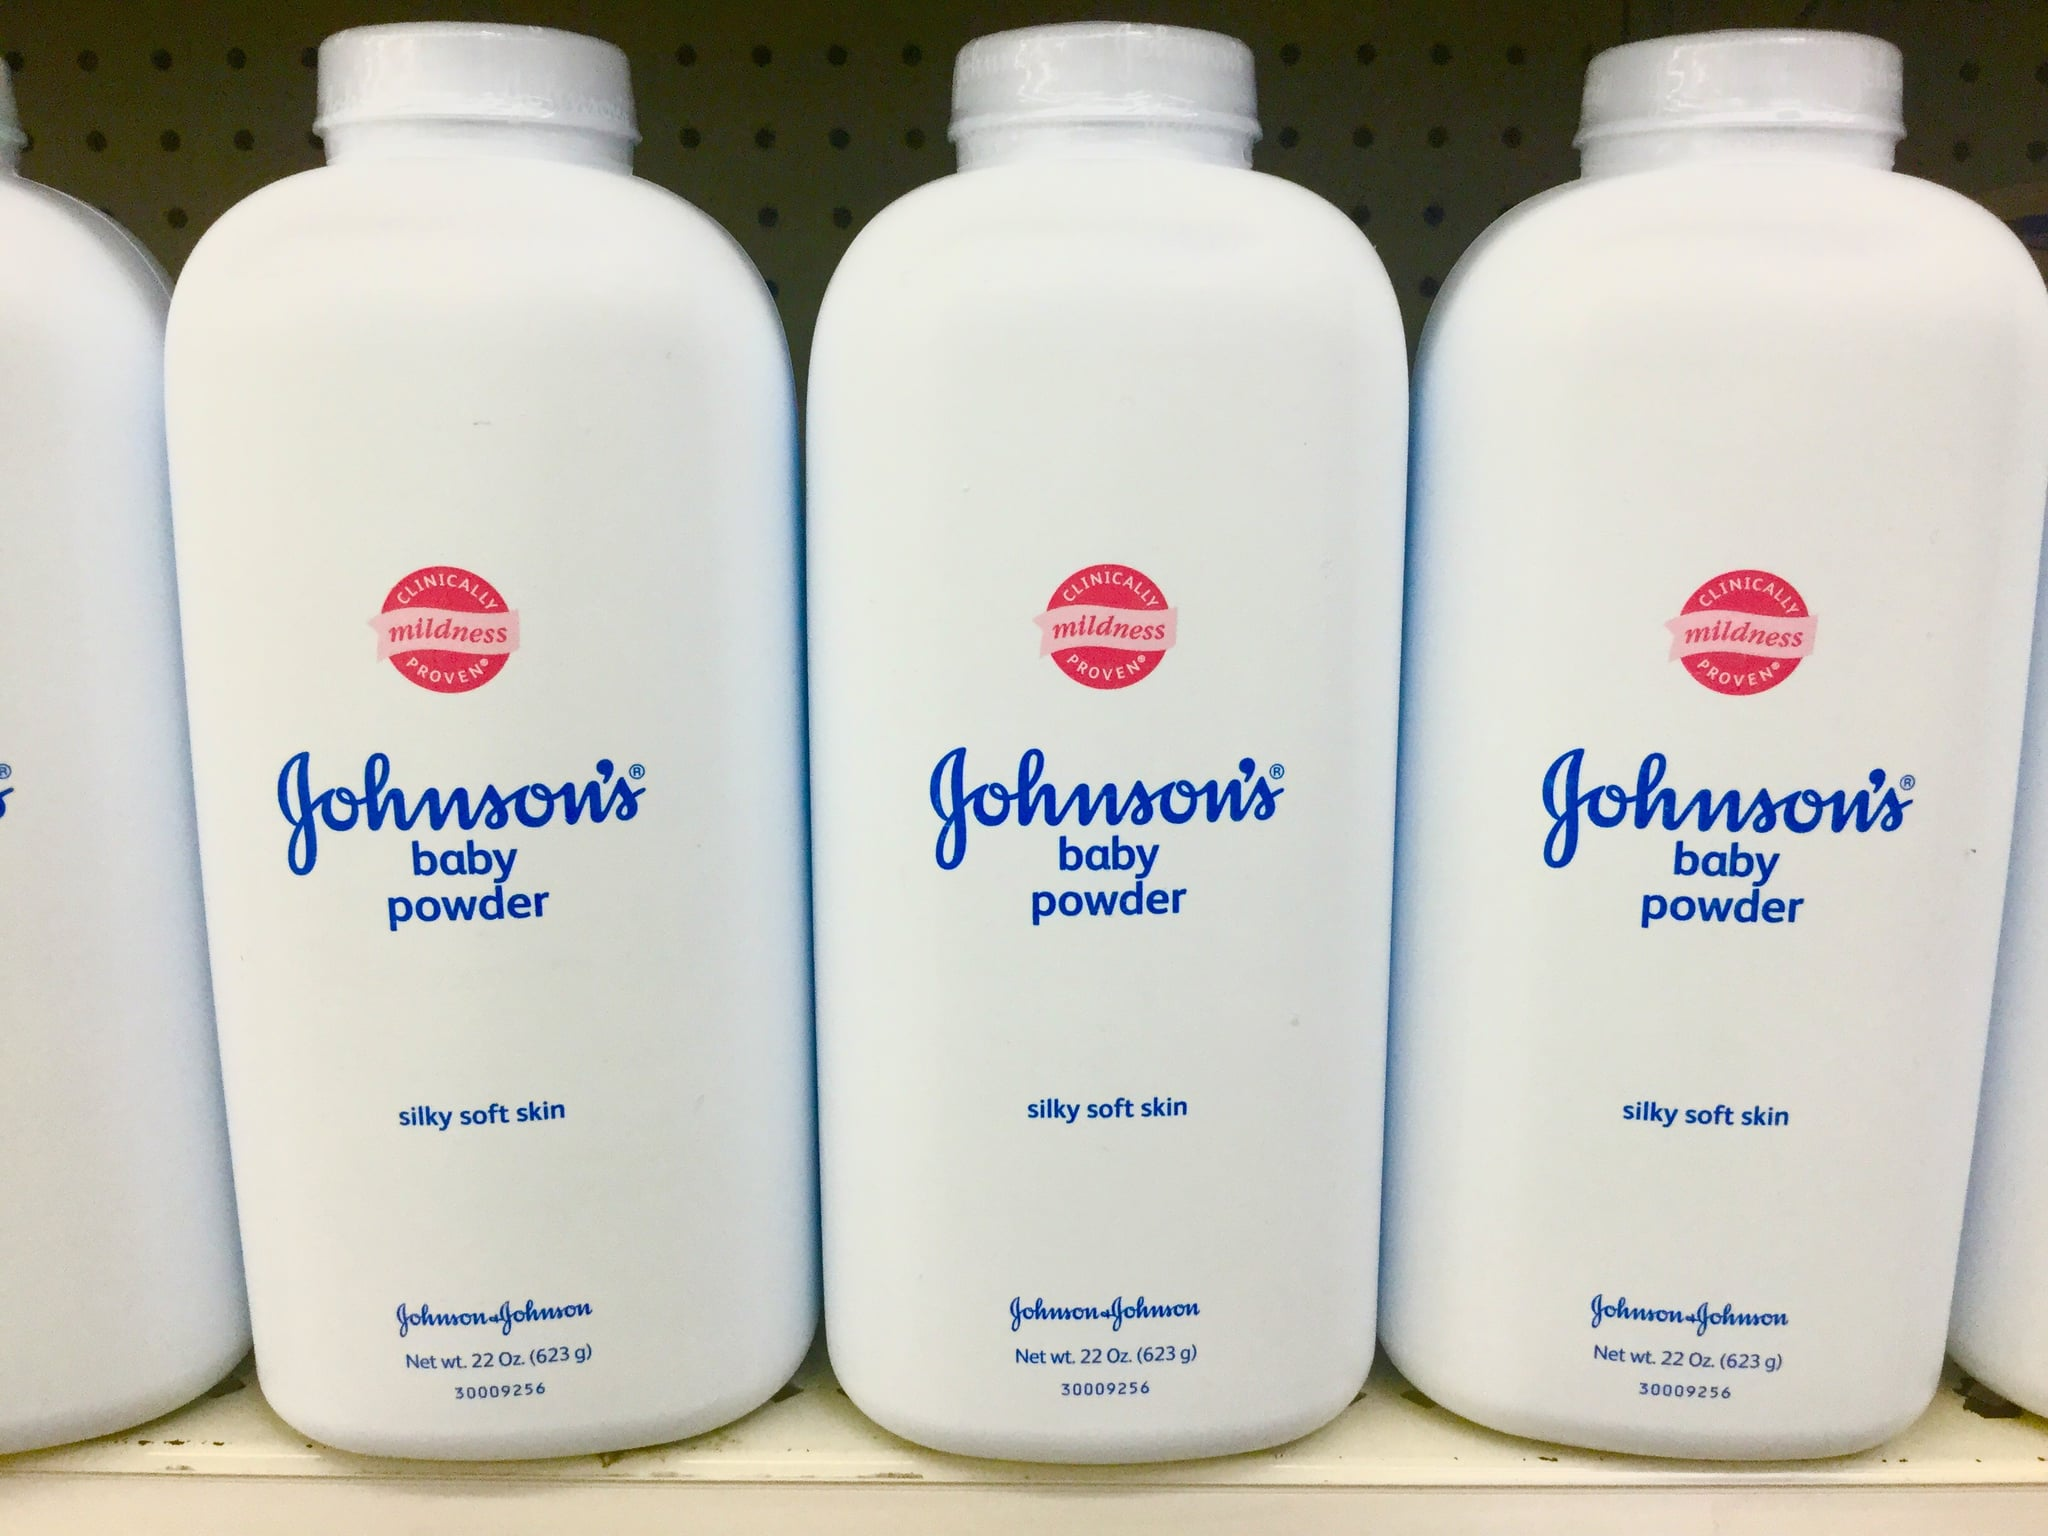 Johnson & Johnson Under Criminal Investigation For Baby Powder — Here's What You Need to Know